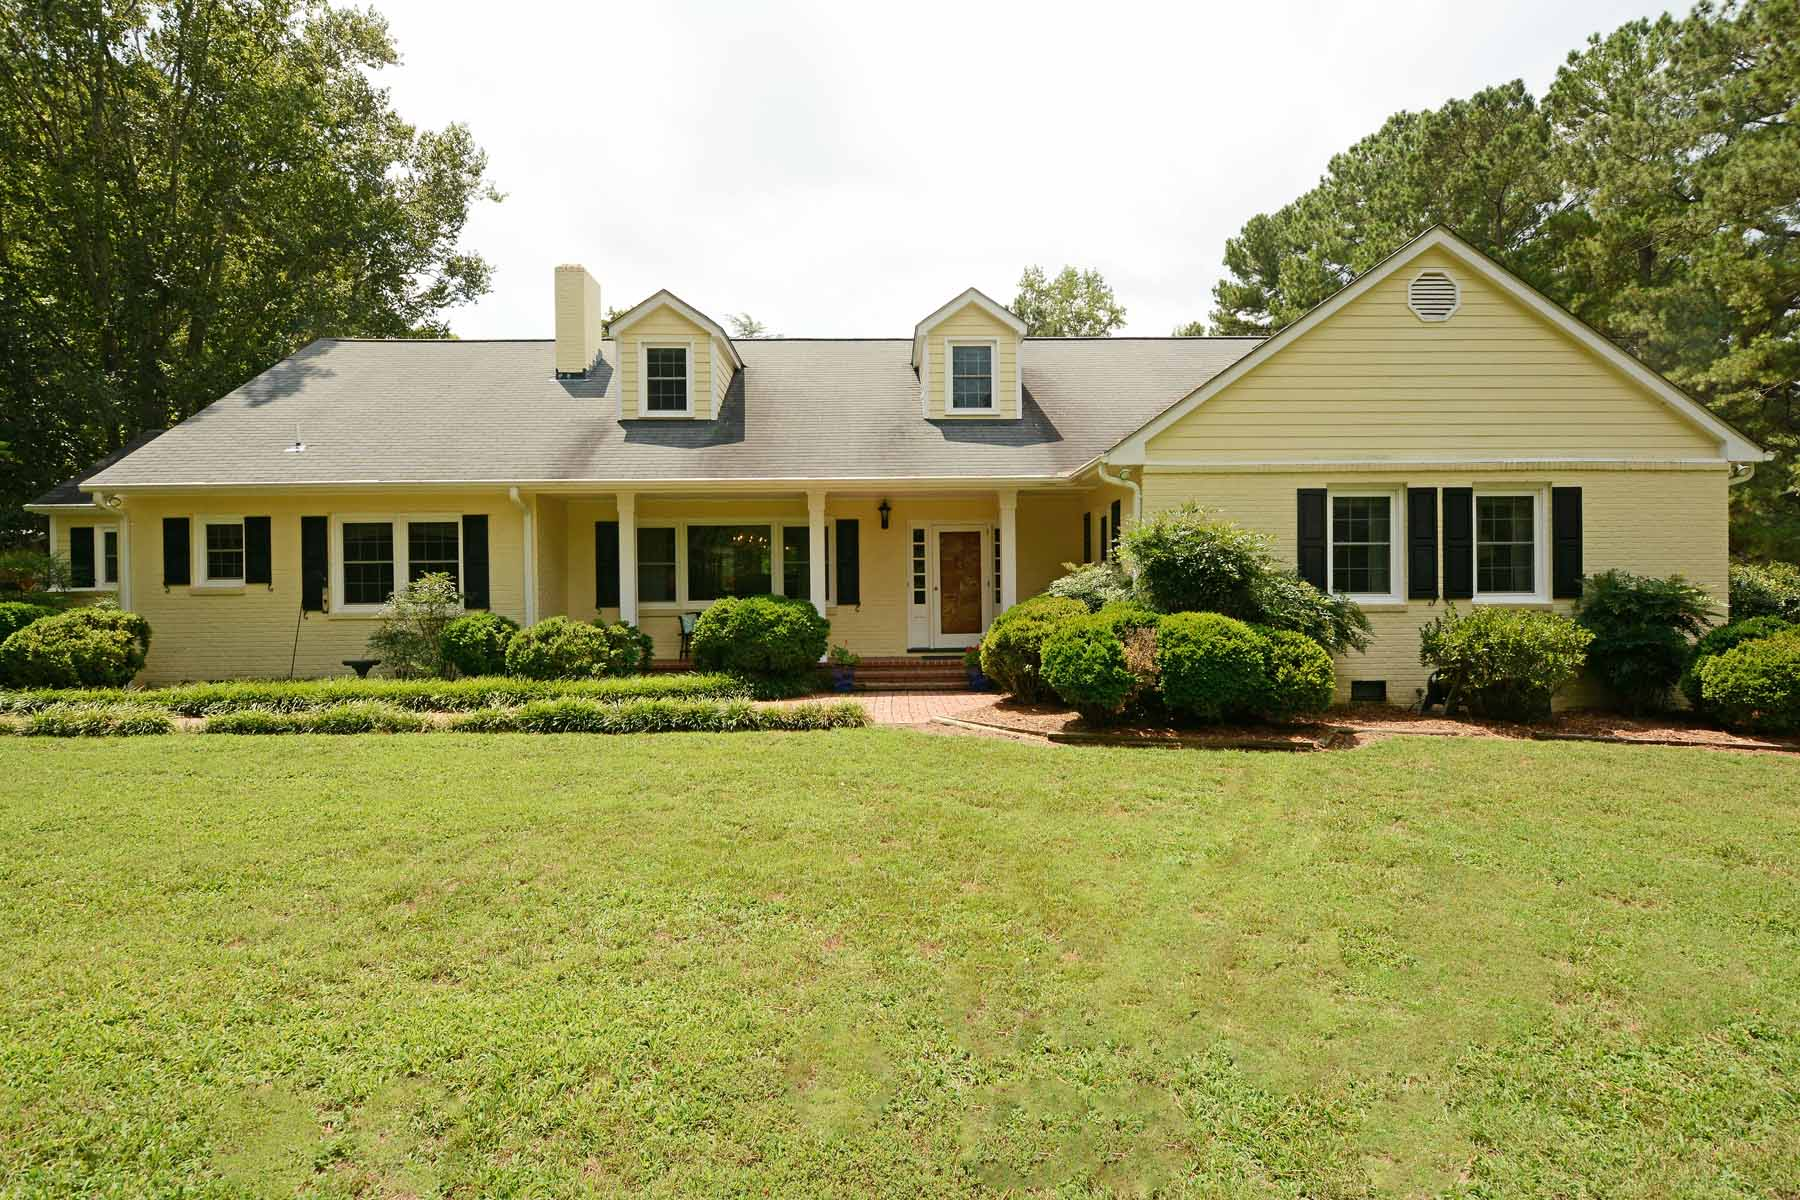 Single Family Homes for Active at Nine Acres, Four Blocks from Downtown 321 Graham St Warrenton, North Carolina 27589 United States